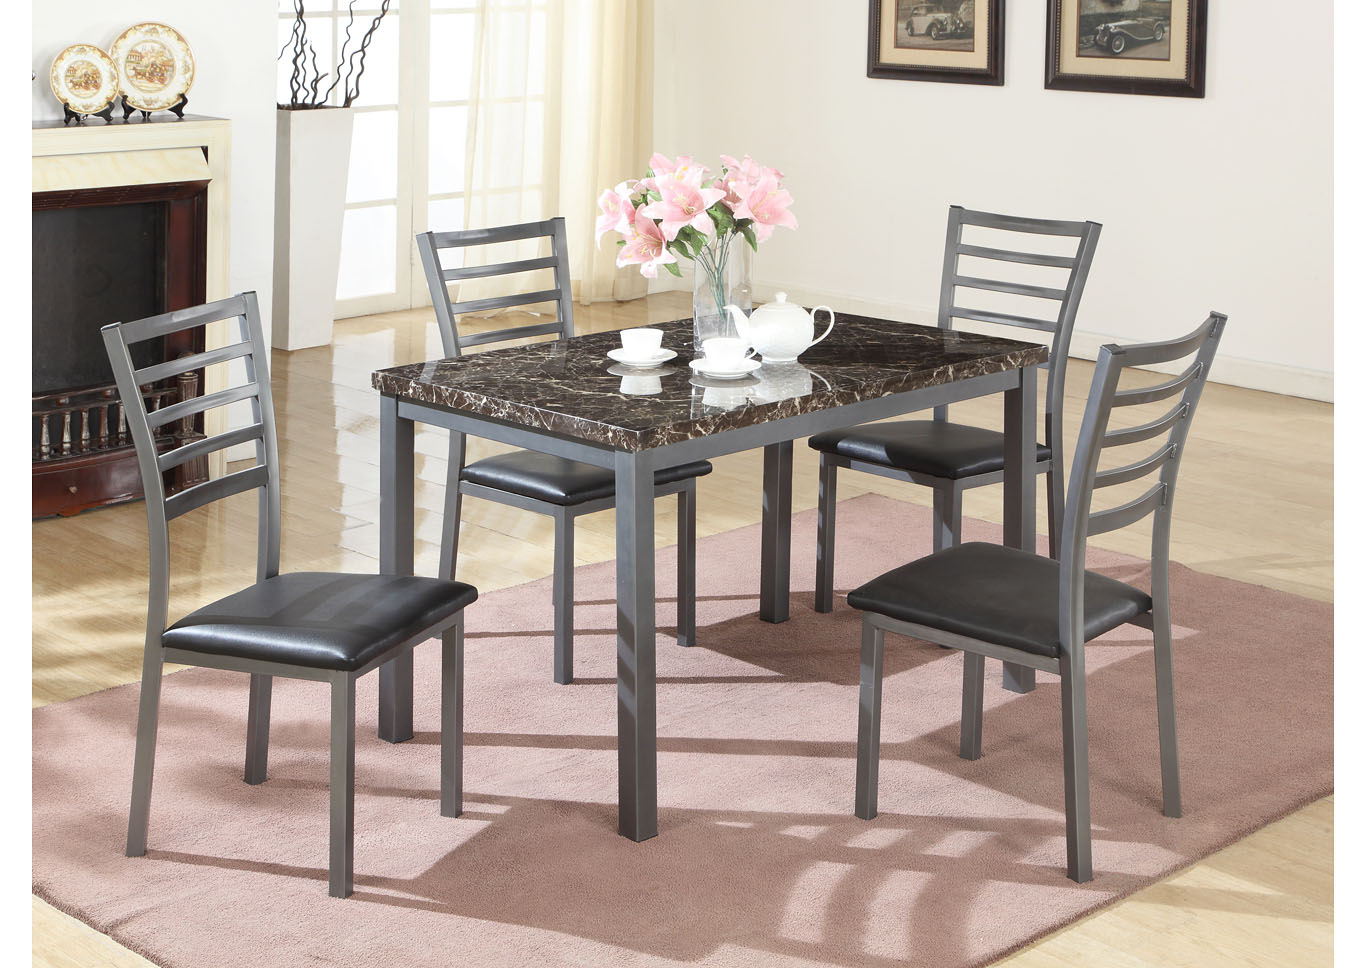 Faux Mable Top Dinette (Set of 5),Global Trading